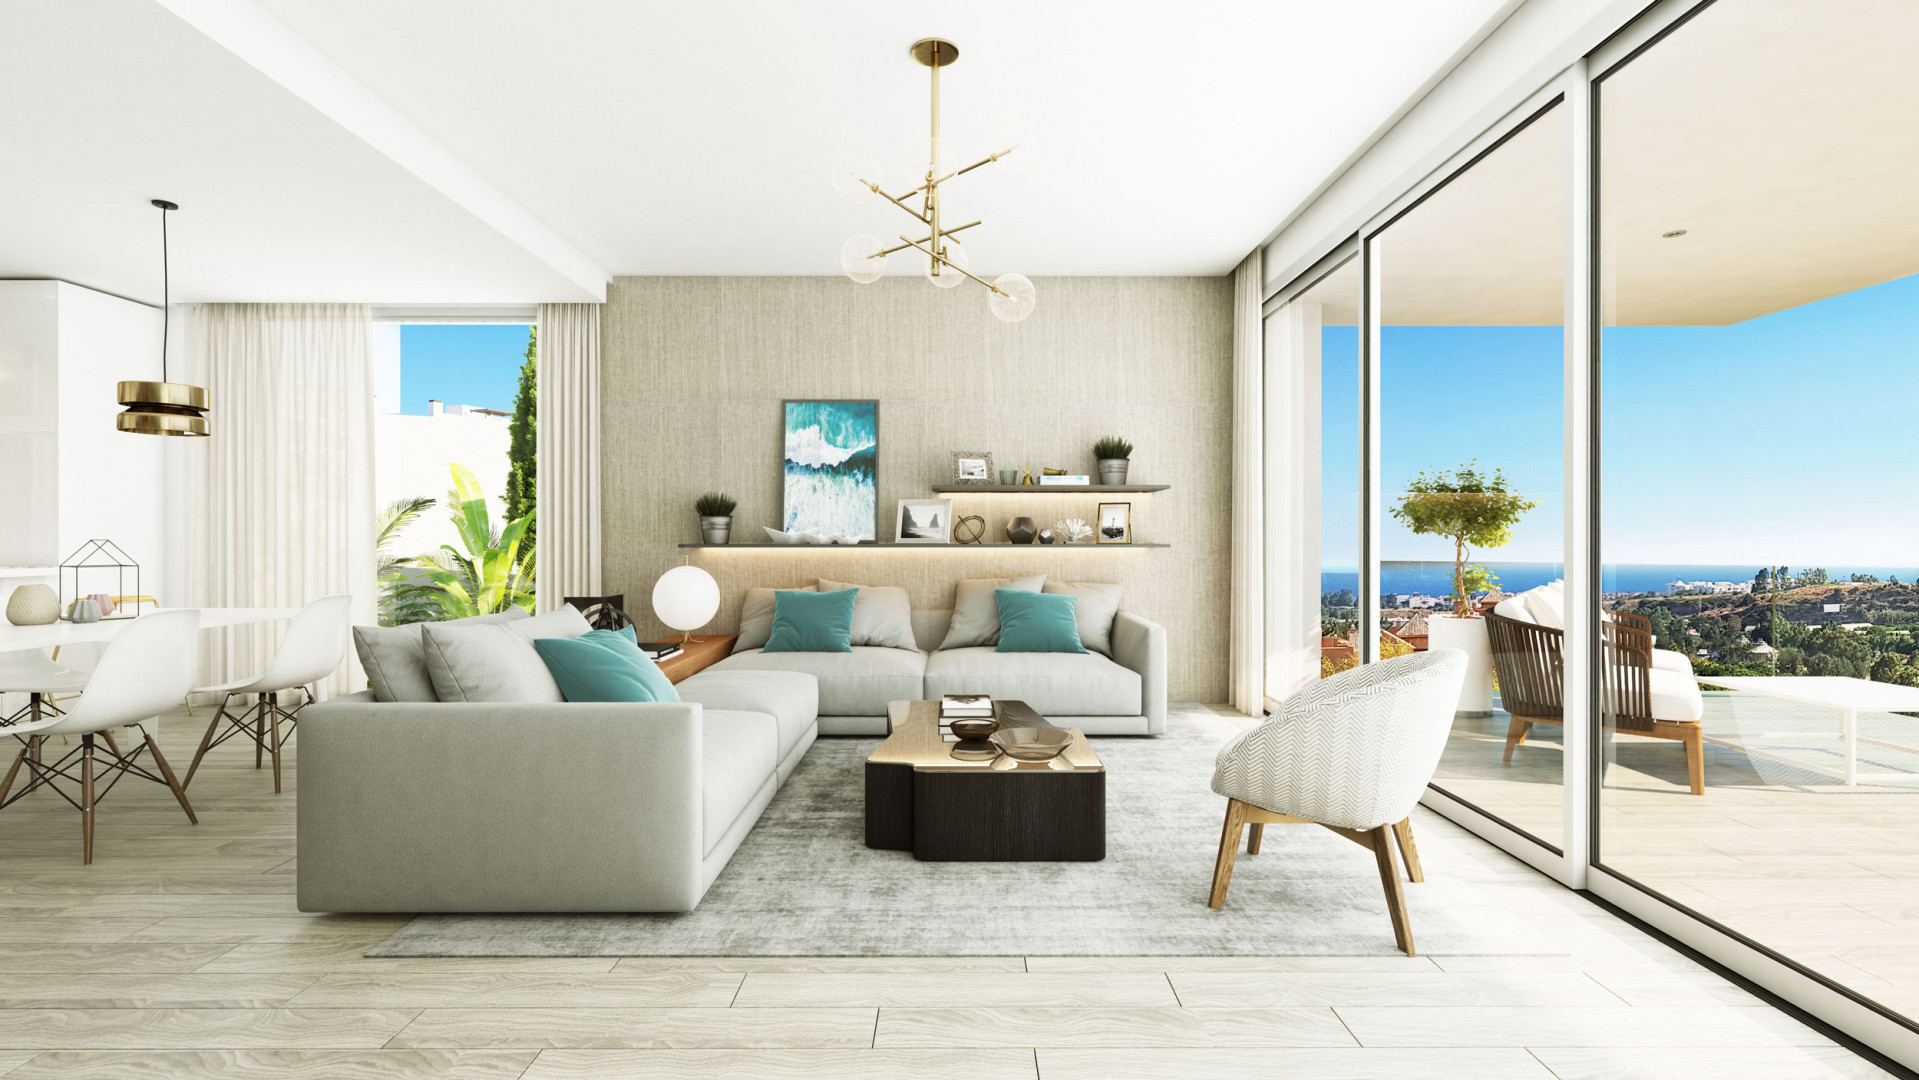 Project of 36 townhomes walking distance to amenities – Cancelada, Estepona